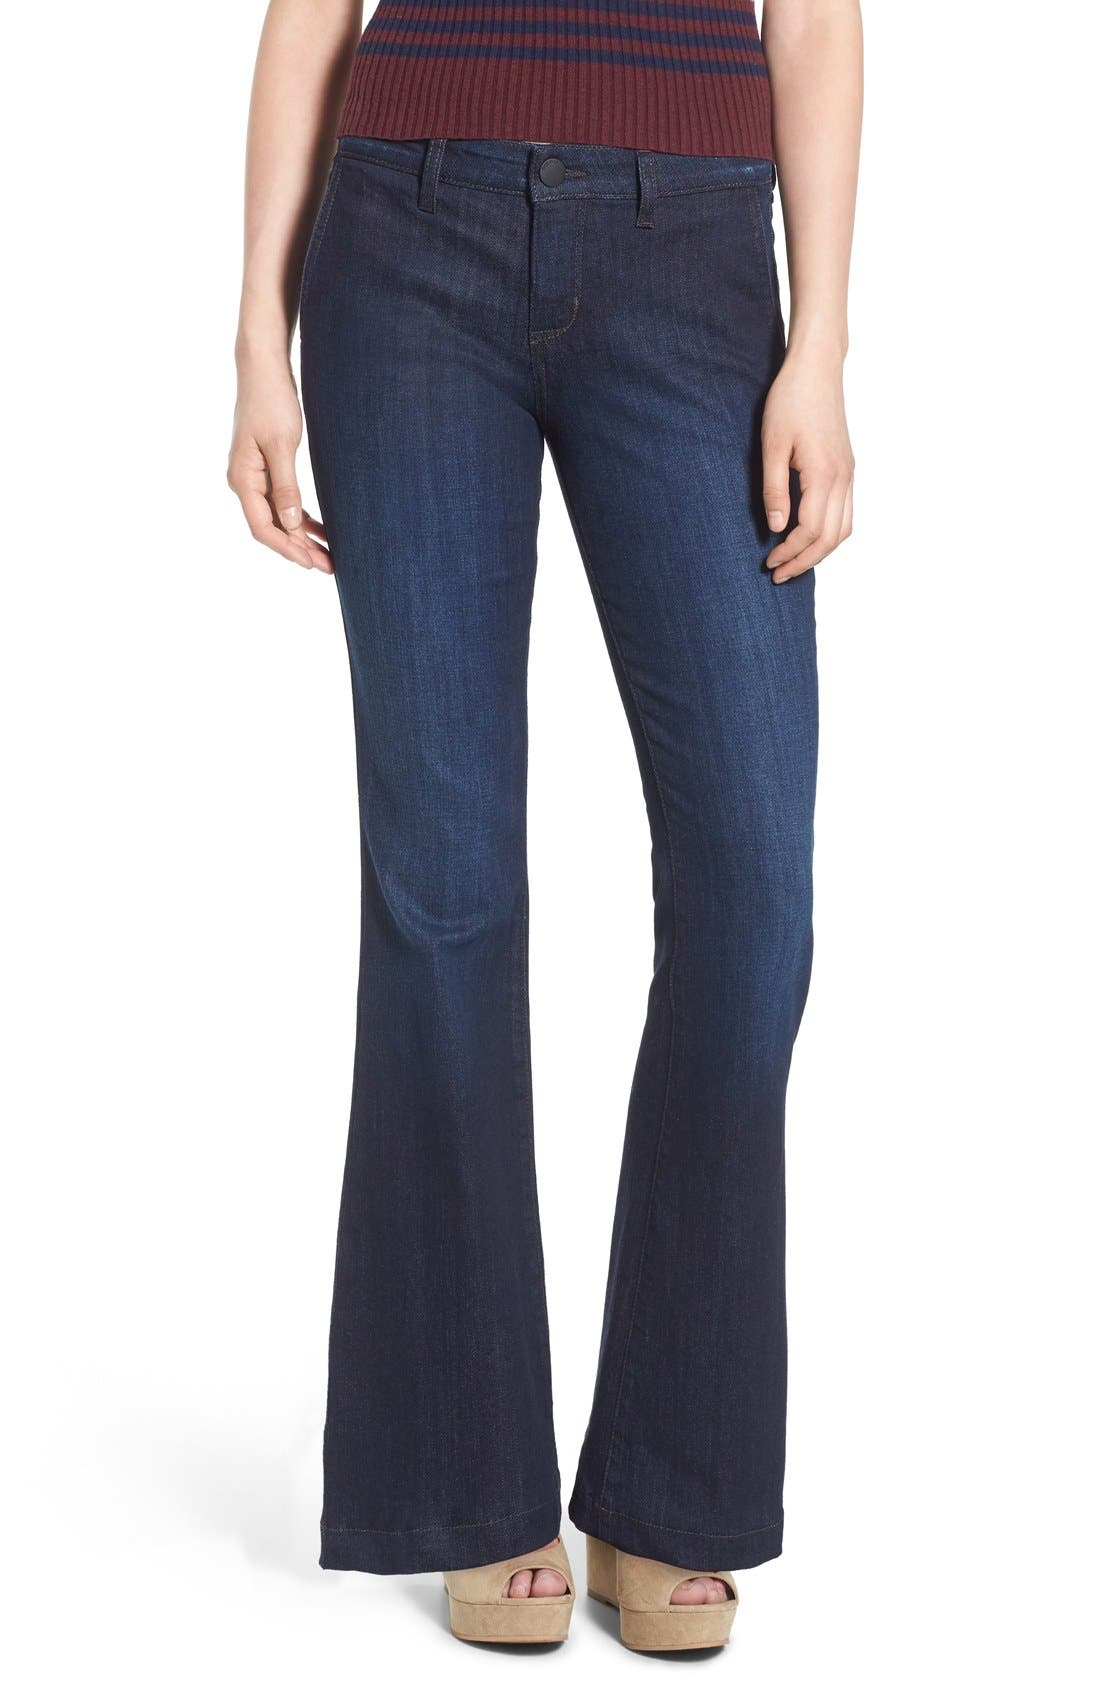 Alternate Image 1 Selected - STS Blue Flare Leg Stretch Jeans (West Surfside)